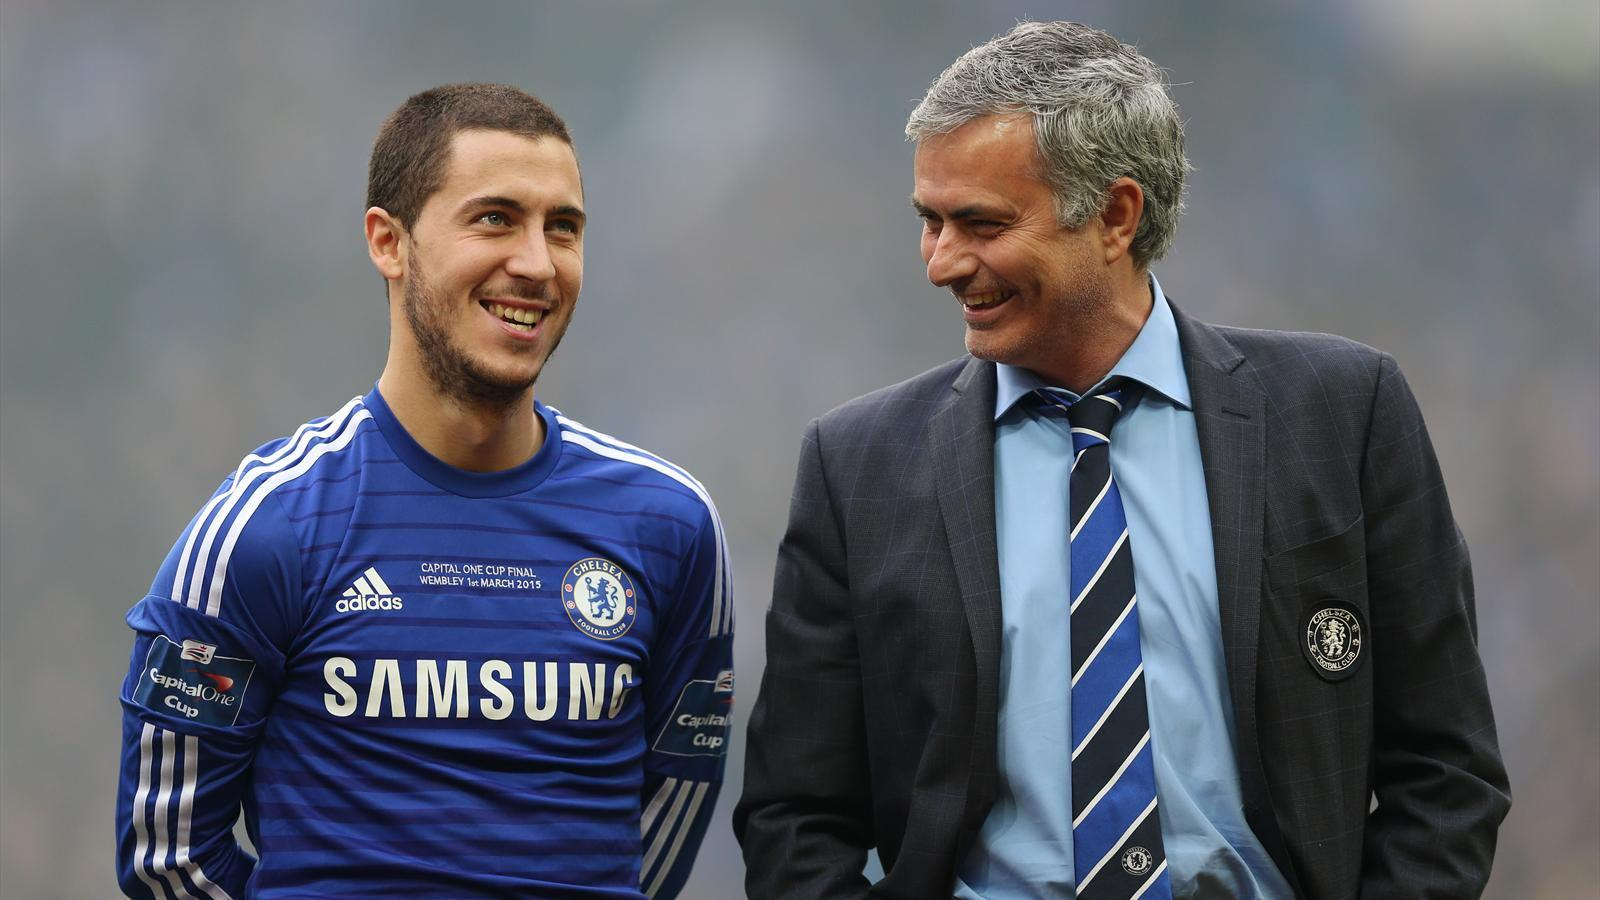 UNILAD hazard jose34196 Jose Mourinho Is Chelseas Special One, And The Fans Know It